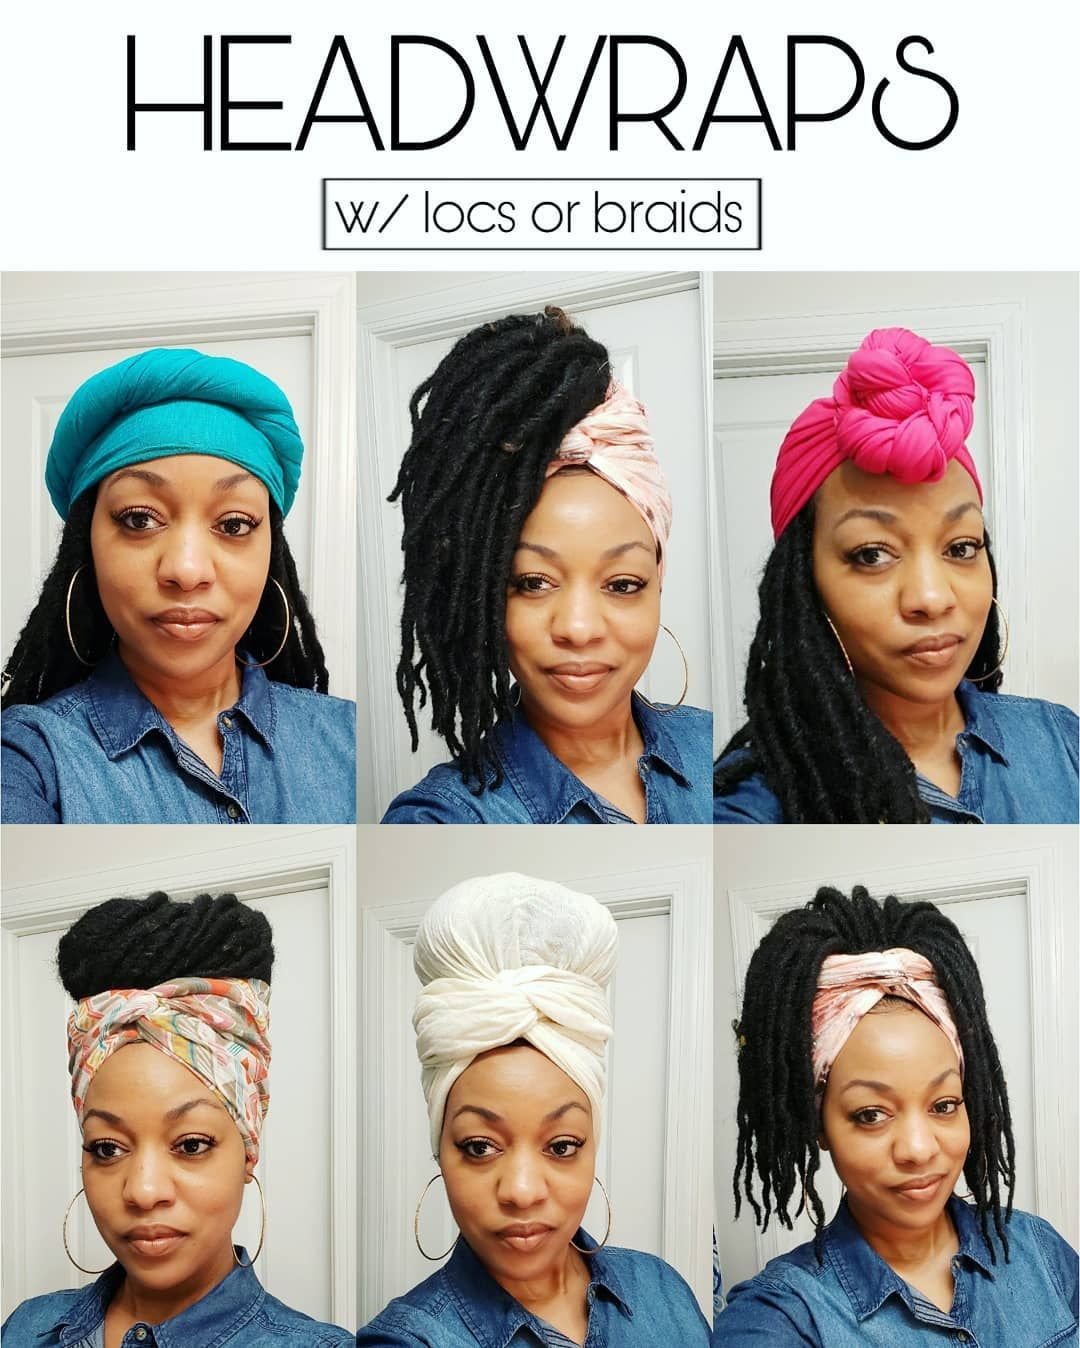 Headwrap styles with faux locs or braids instagram